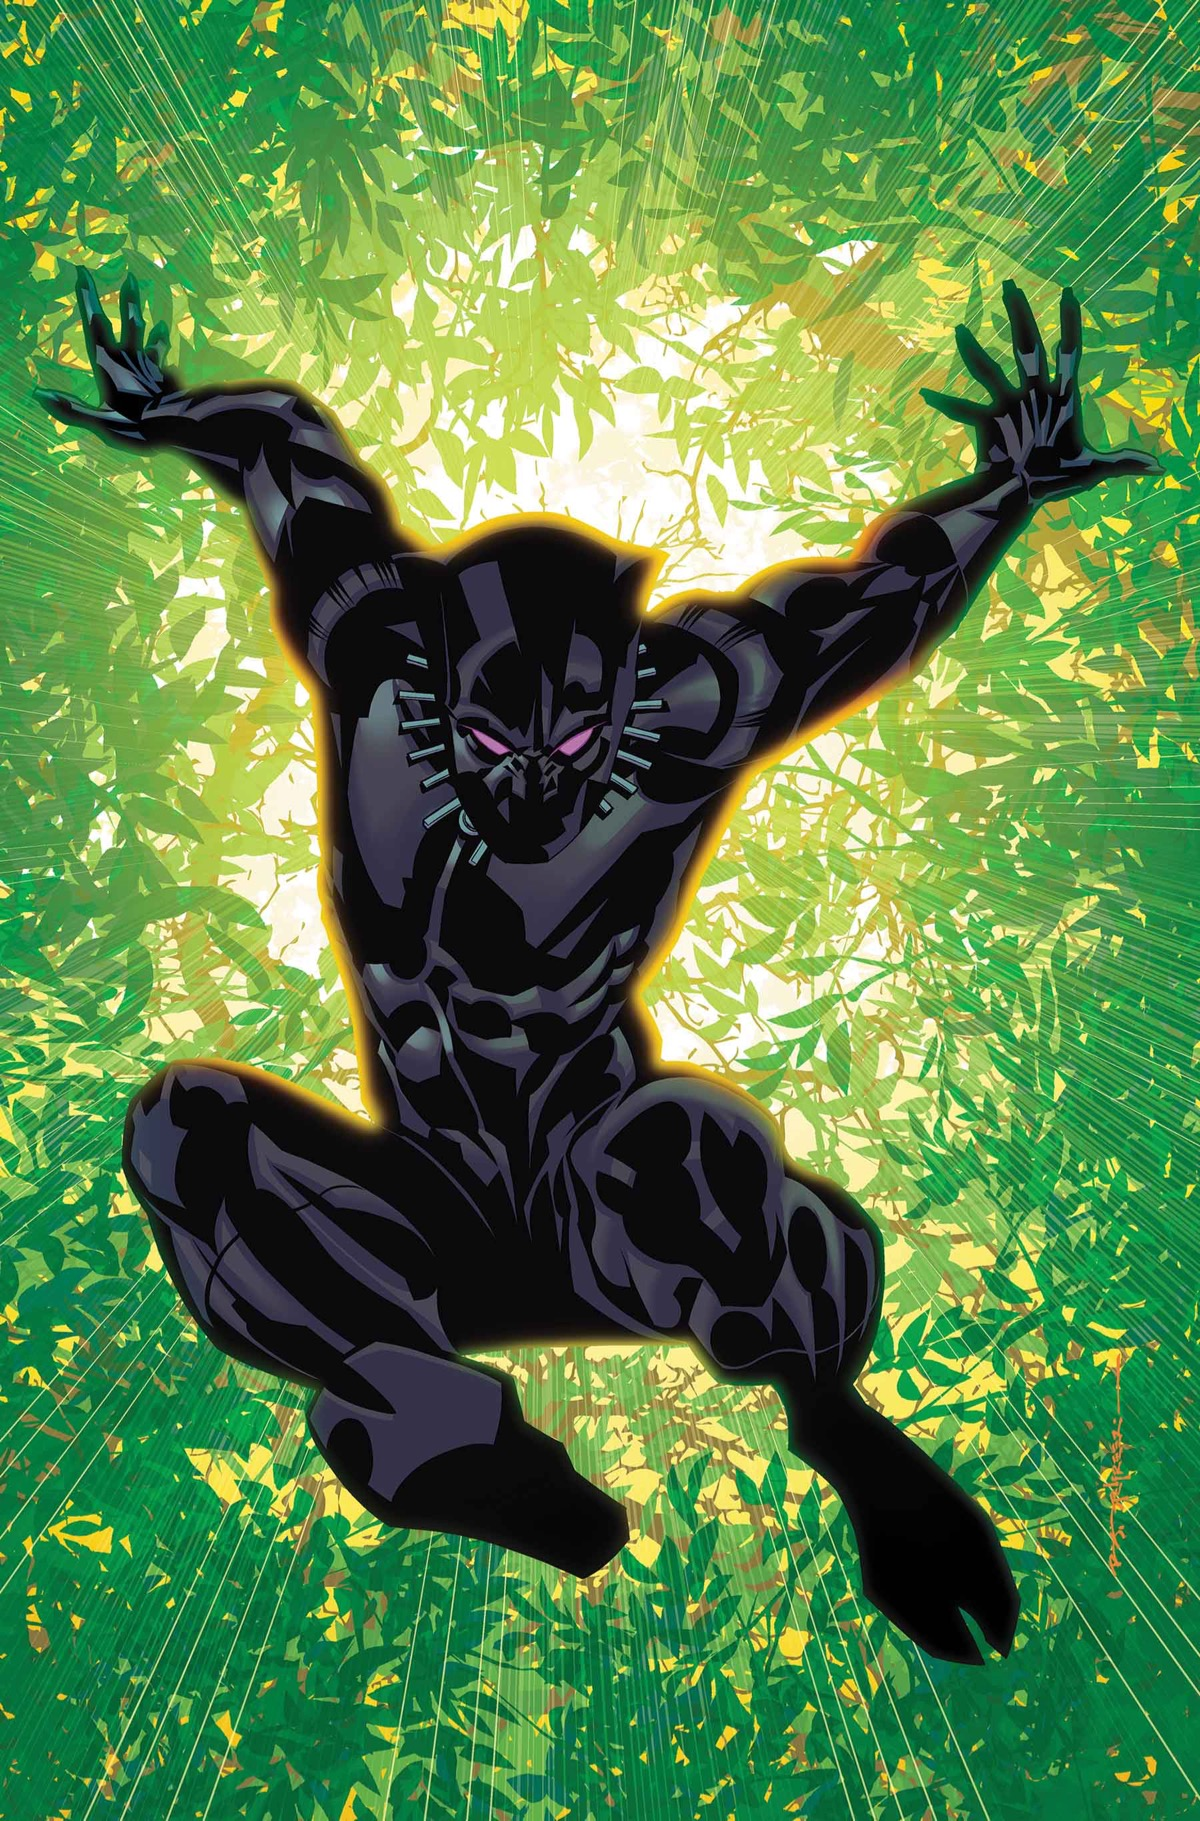 BLACK PANTHER ANNUAL #1 VARIANT